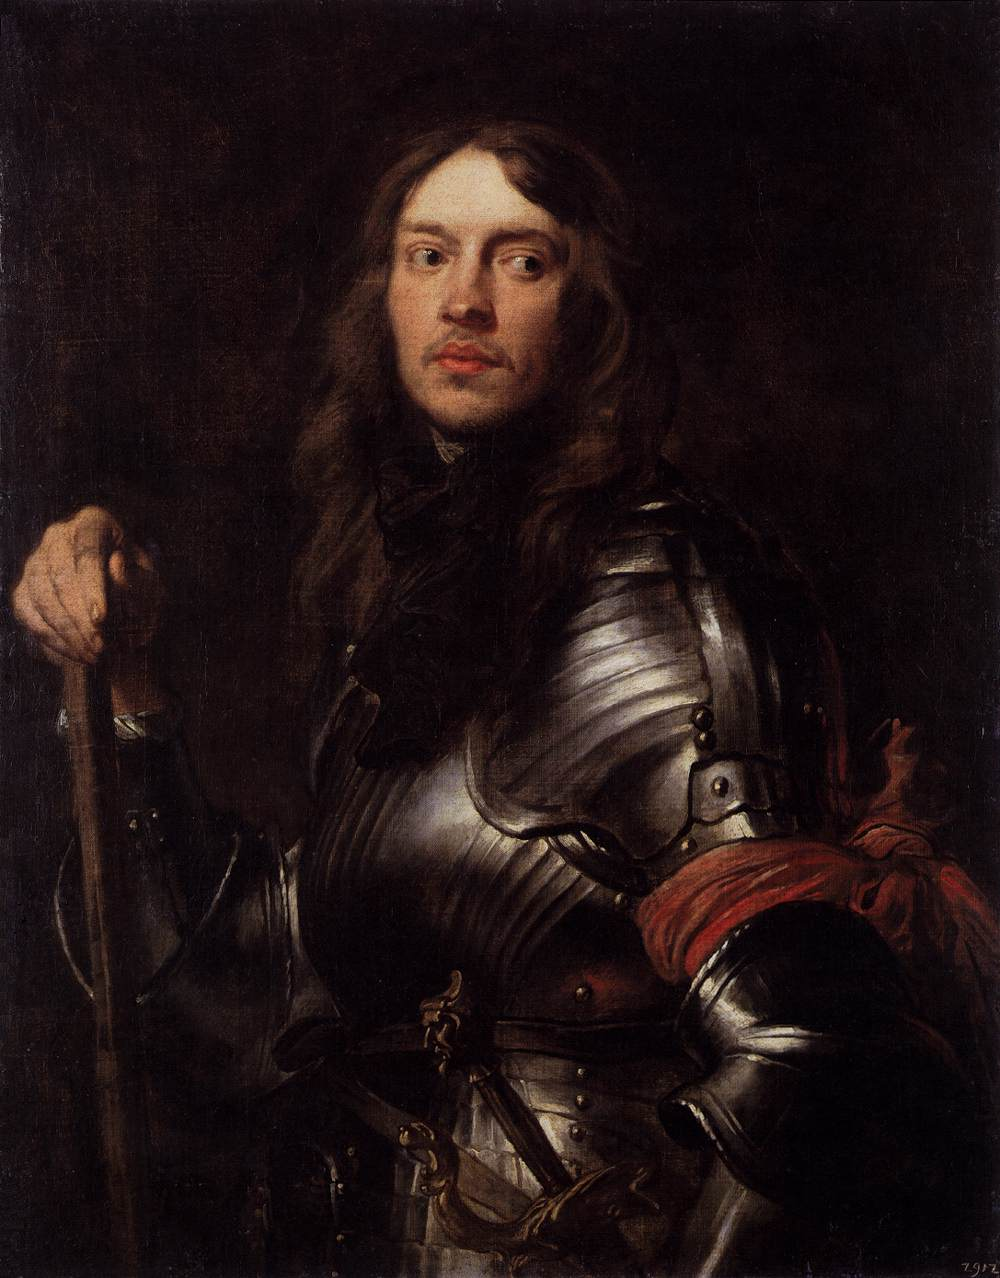 Anthony_van_Dyck_-_Portrait_of_a_Man_in_Armour_with_Red_Scarf_-_WGA07376.jpg